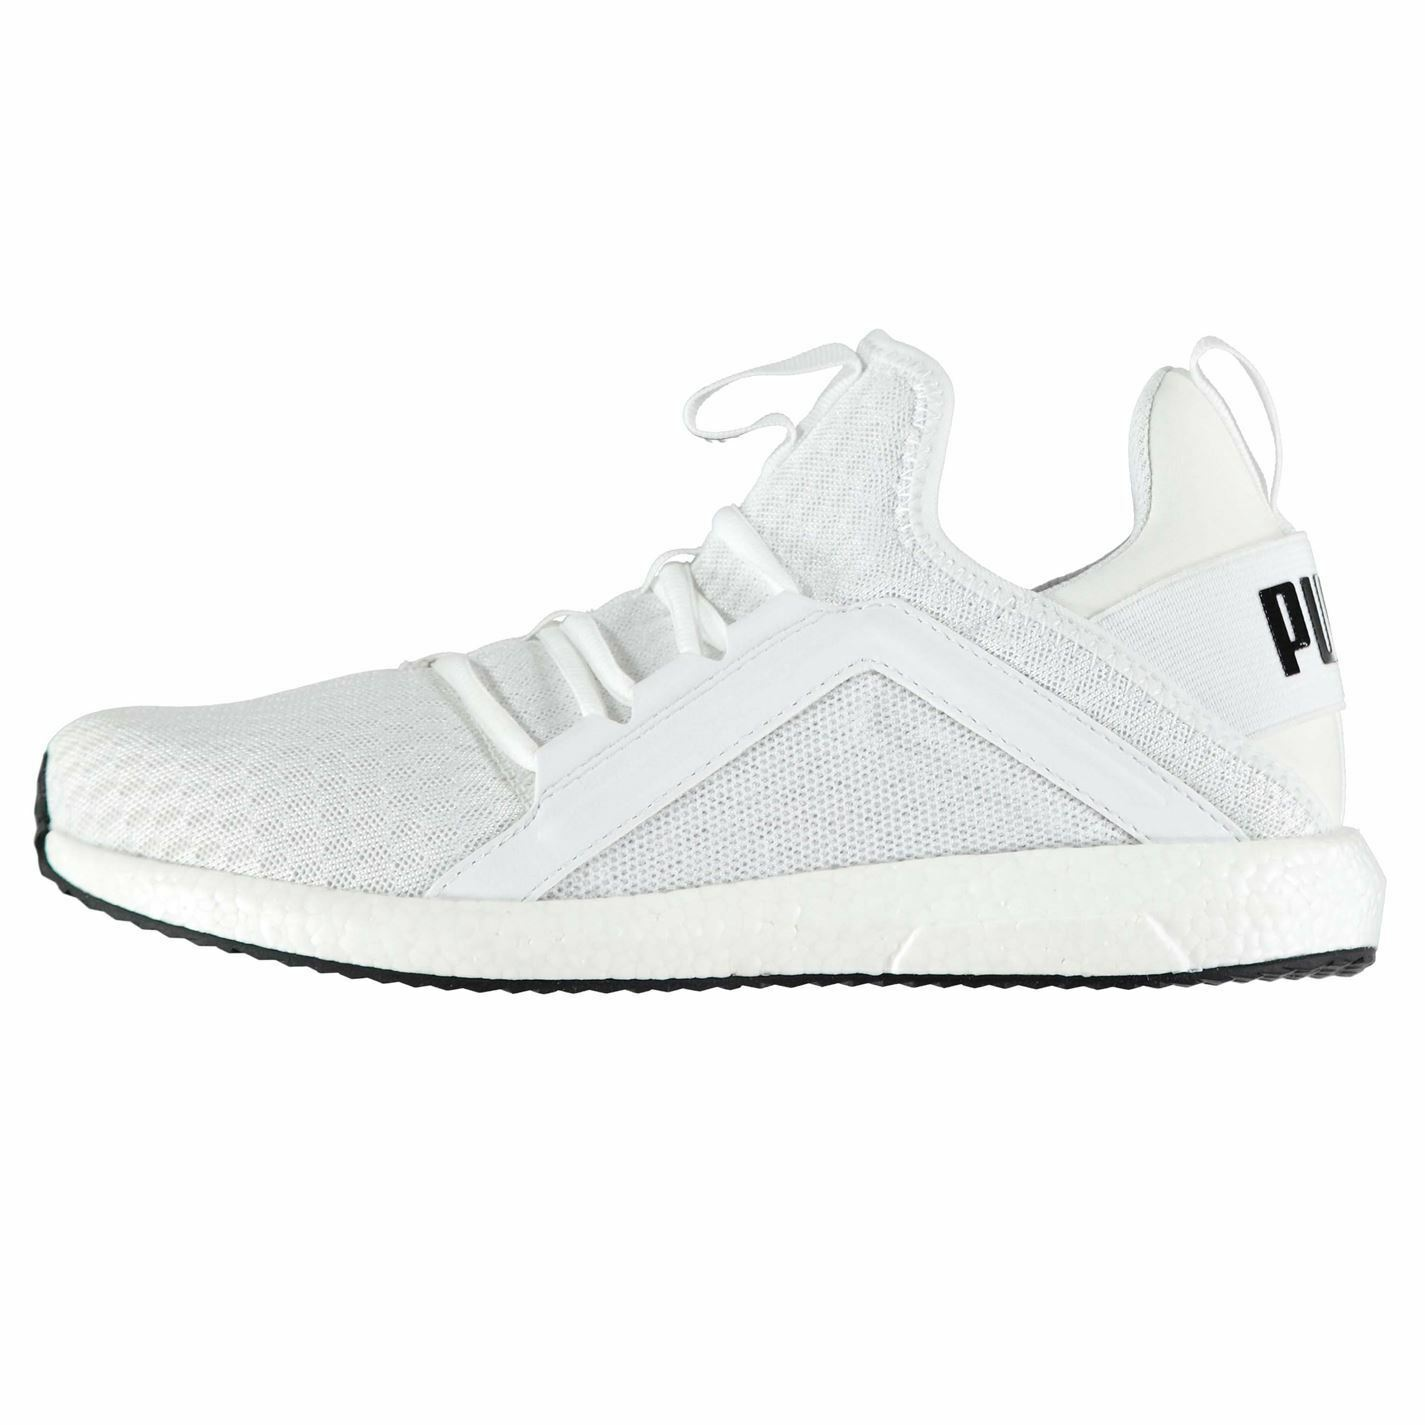 20d972c0118c Puma Mega NRGY Running shoes Womens Jogging Trainers Sneakers White ...